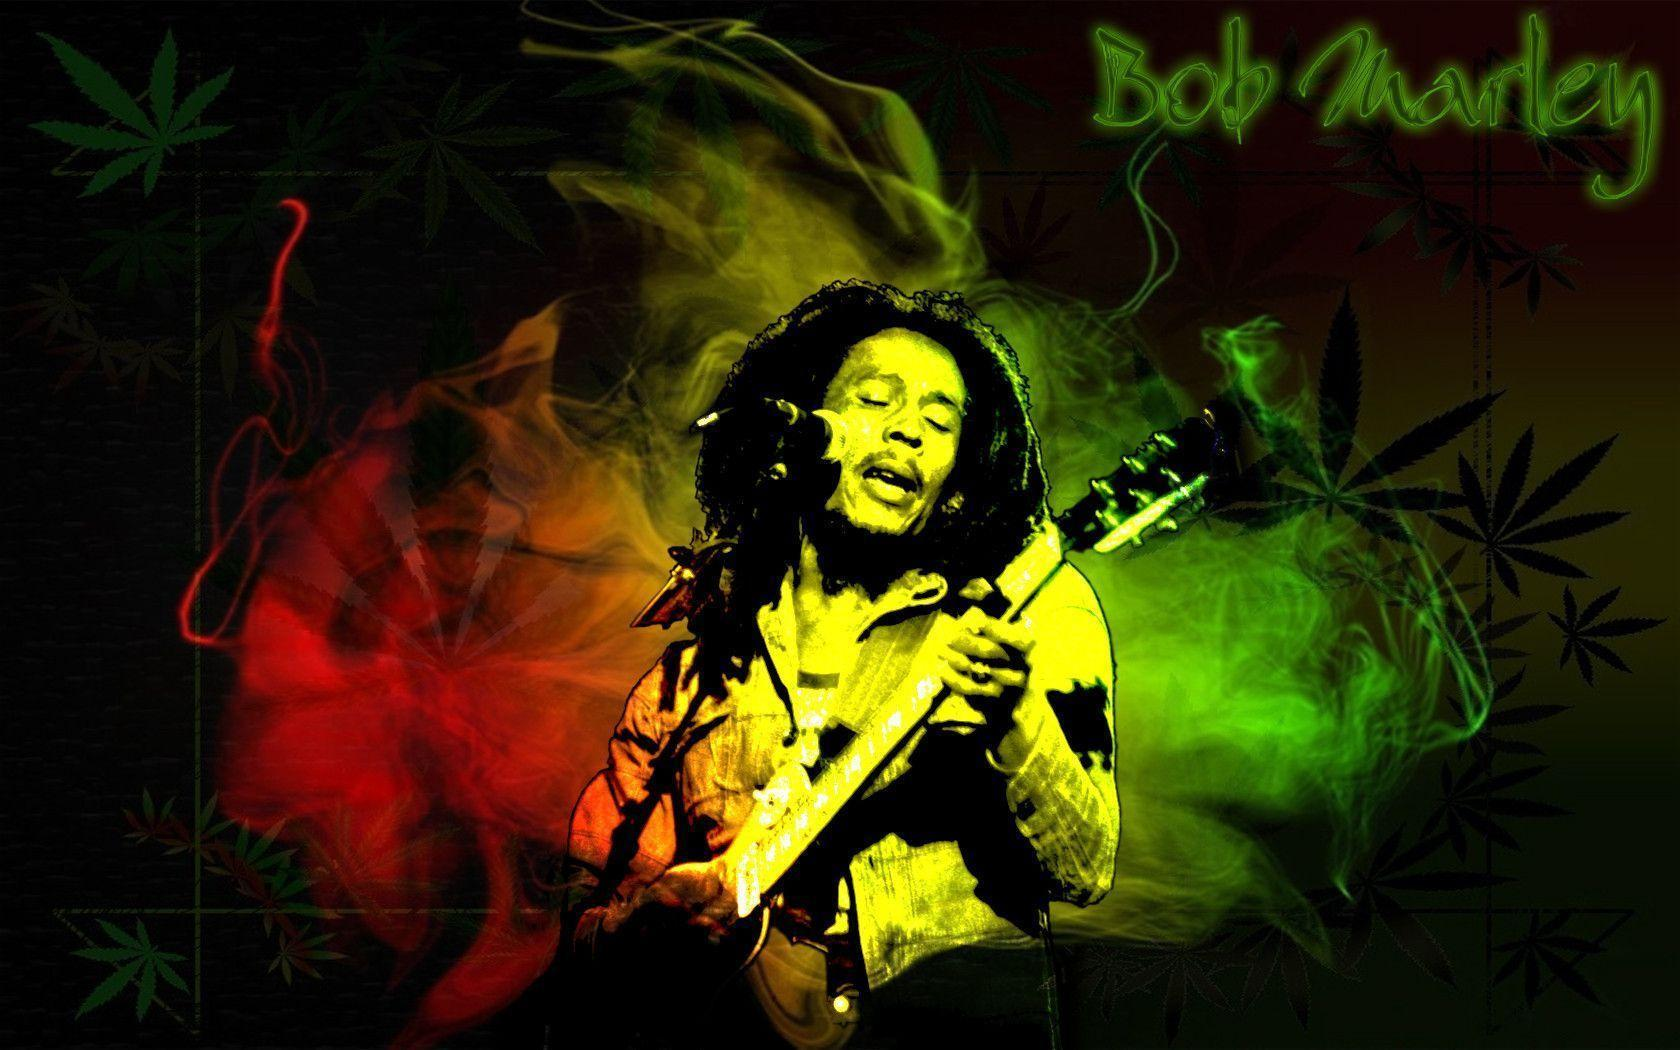 Weed wallpapers desktop wallpaper cave - Rasta bob live wallpaper free download ...